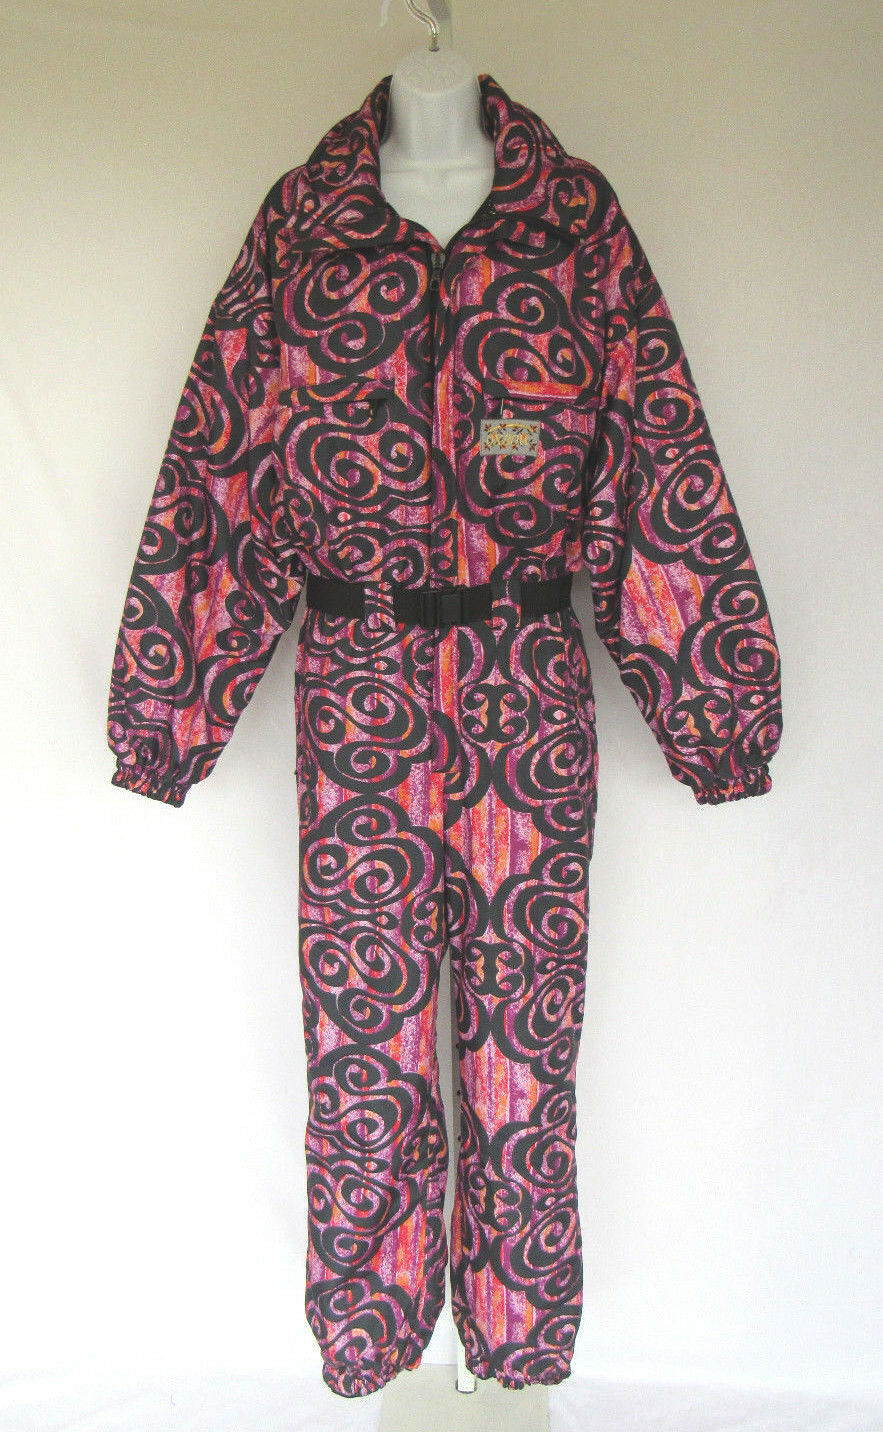 DESIGNER OXBOW FRENCH WOMAN'S SKI  SUIT SZ MEDIUM MOD PATTERN LIKELY NEVER WORN  high quality & fast shipping